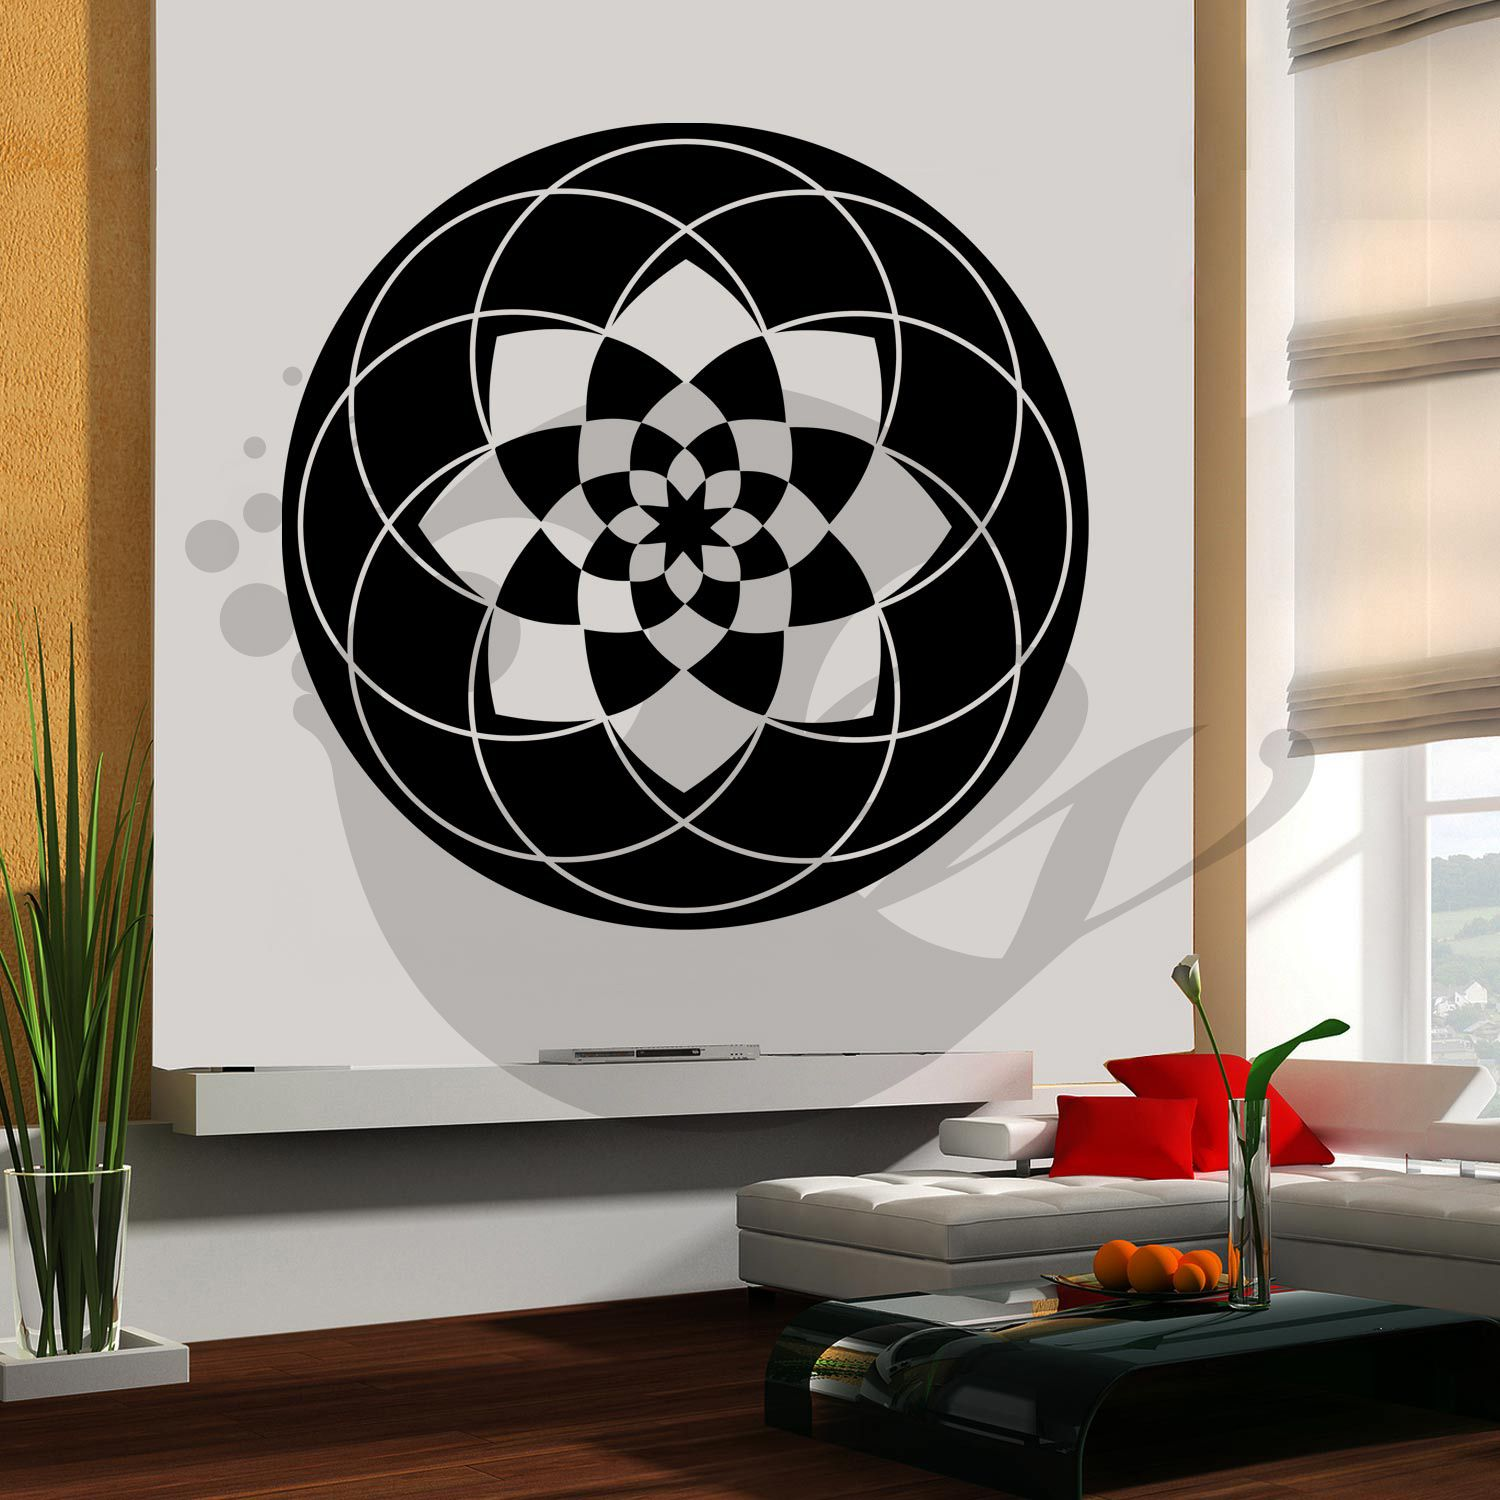 With This Halo Wall Sticker Decal You Can Decorate Your Walls In One